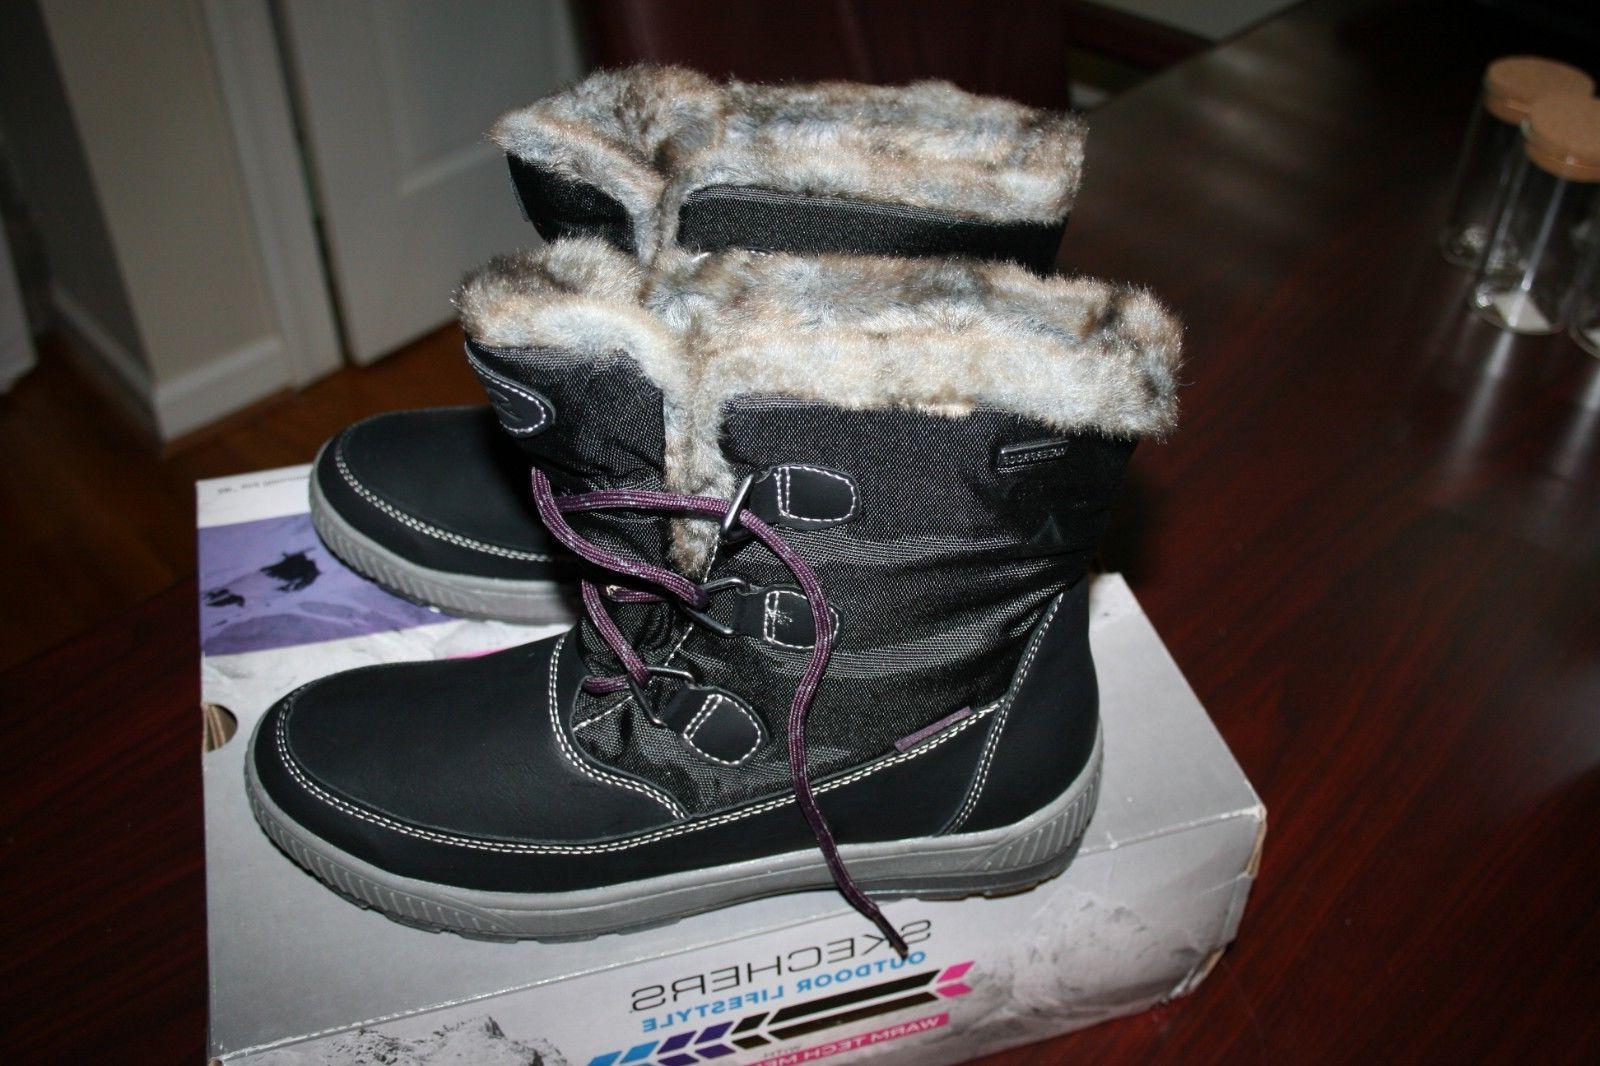 Skechers Woodland Dry Quest Women's Winter Boots Black Size